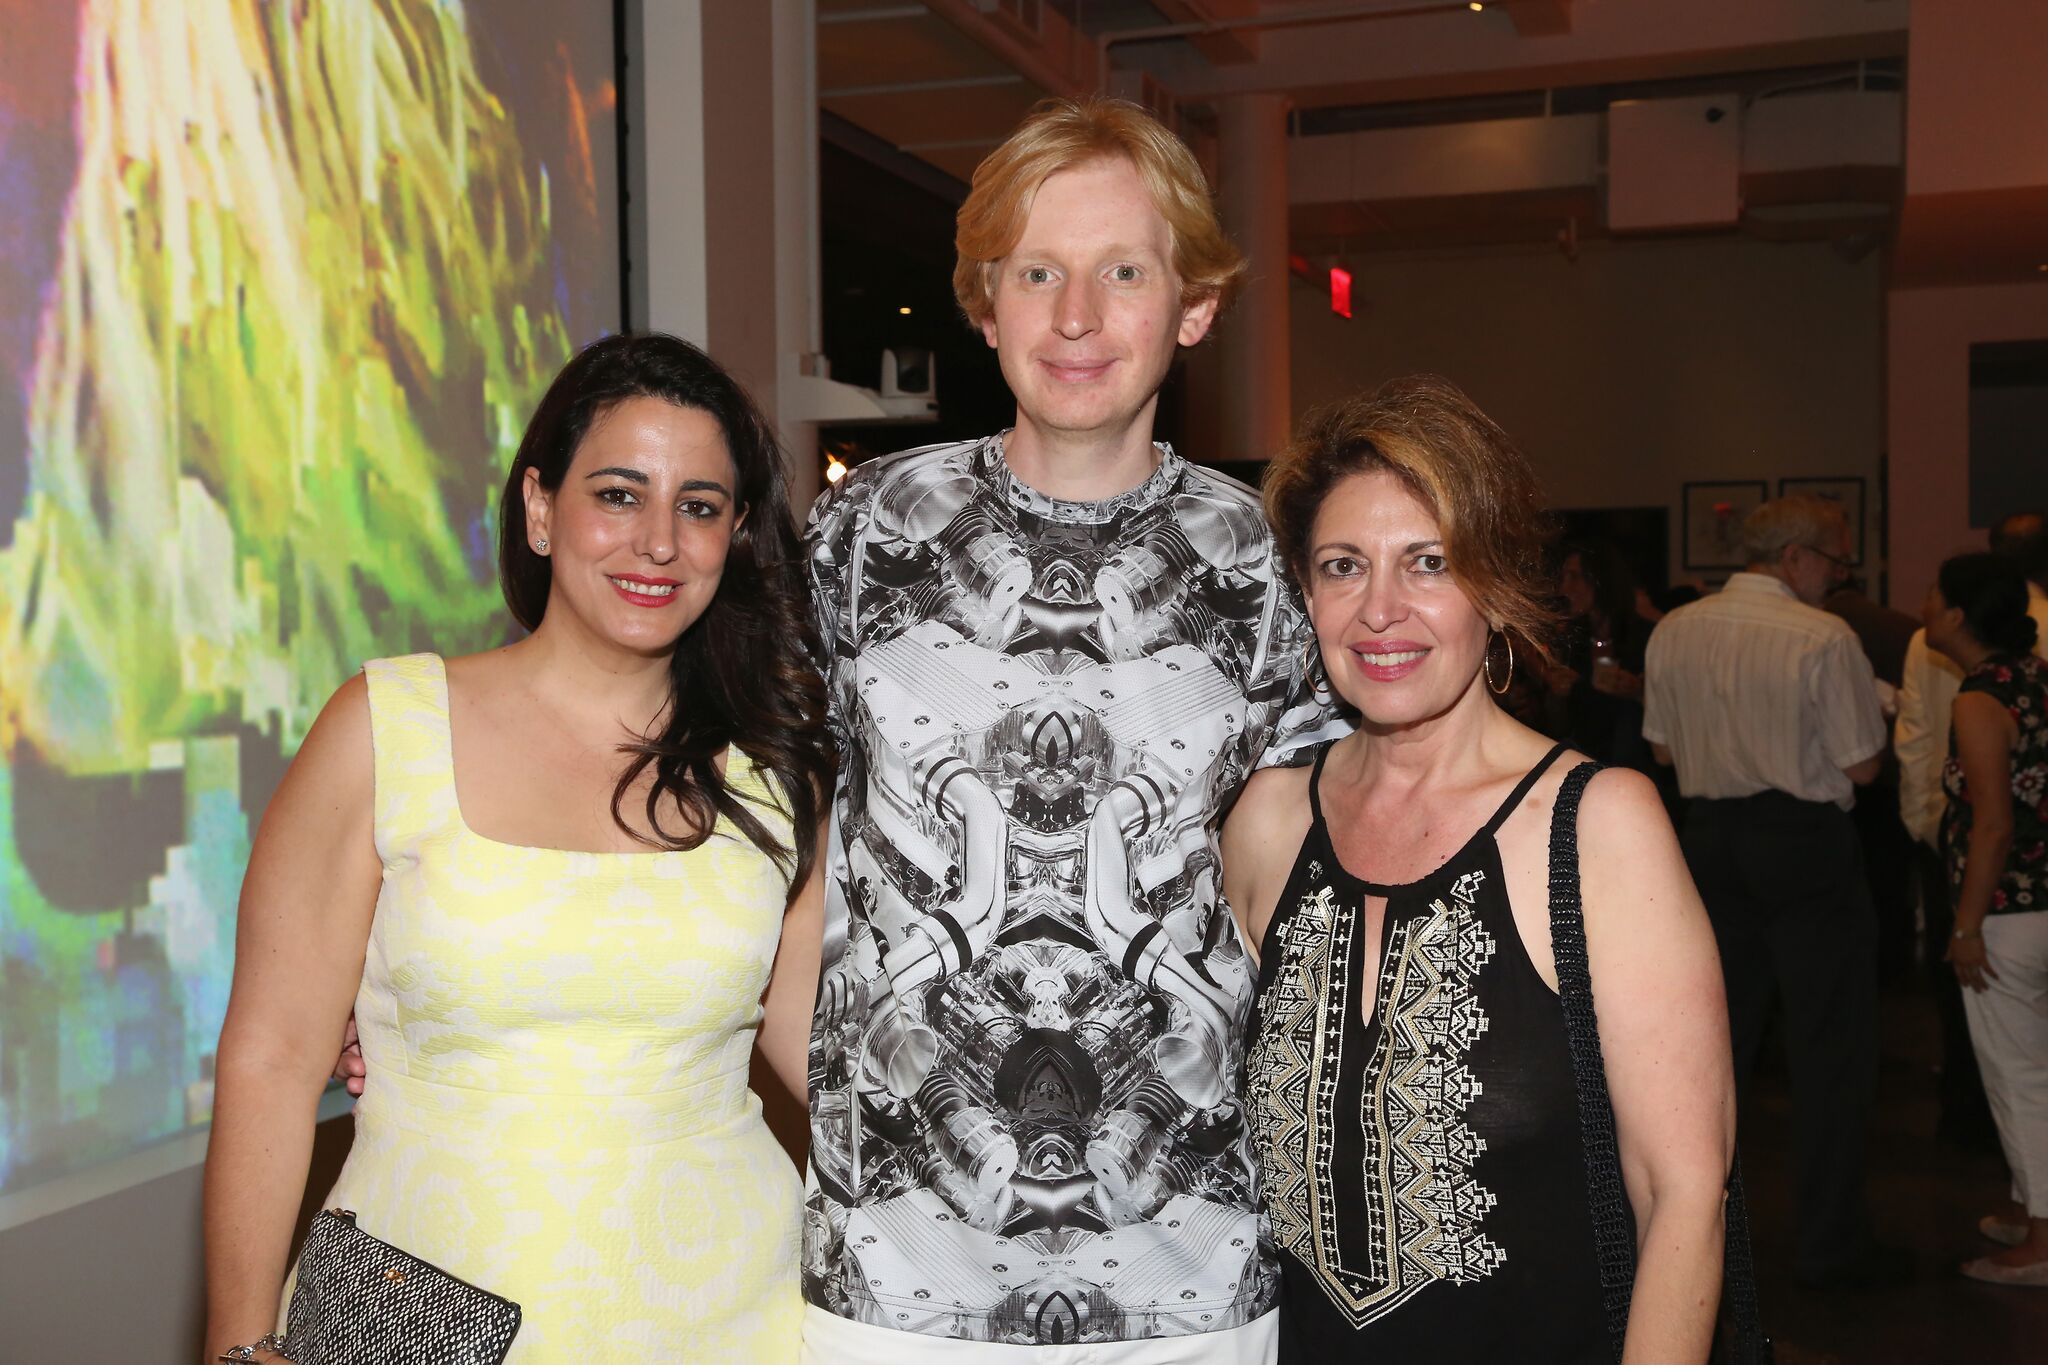 MvVO ART And Accessible Art Fair Held A Summer Soiree With New Partner,  Microblogging Platform And Social Networking Website Tumblr, On Friday,  July 8th, ...